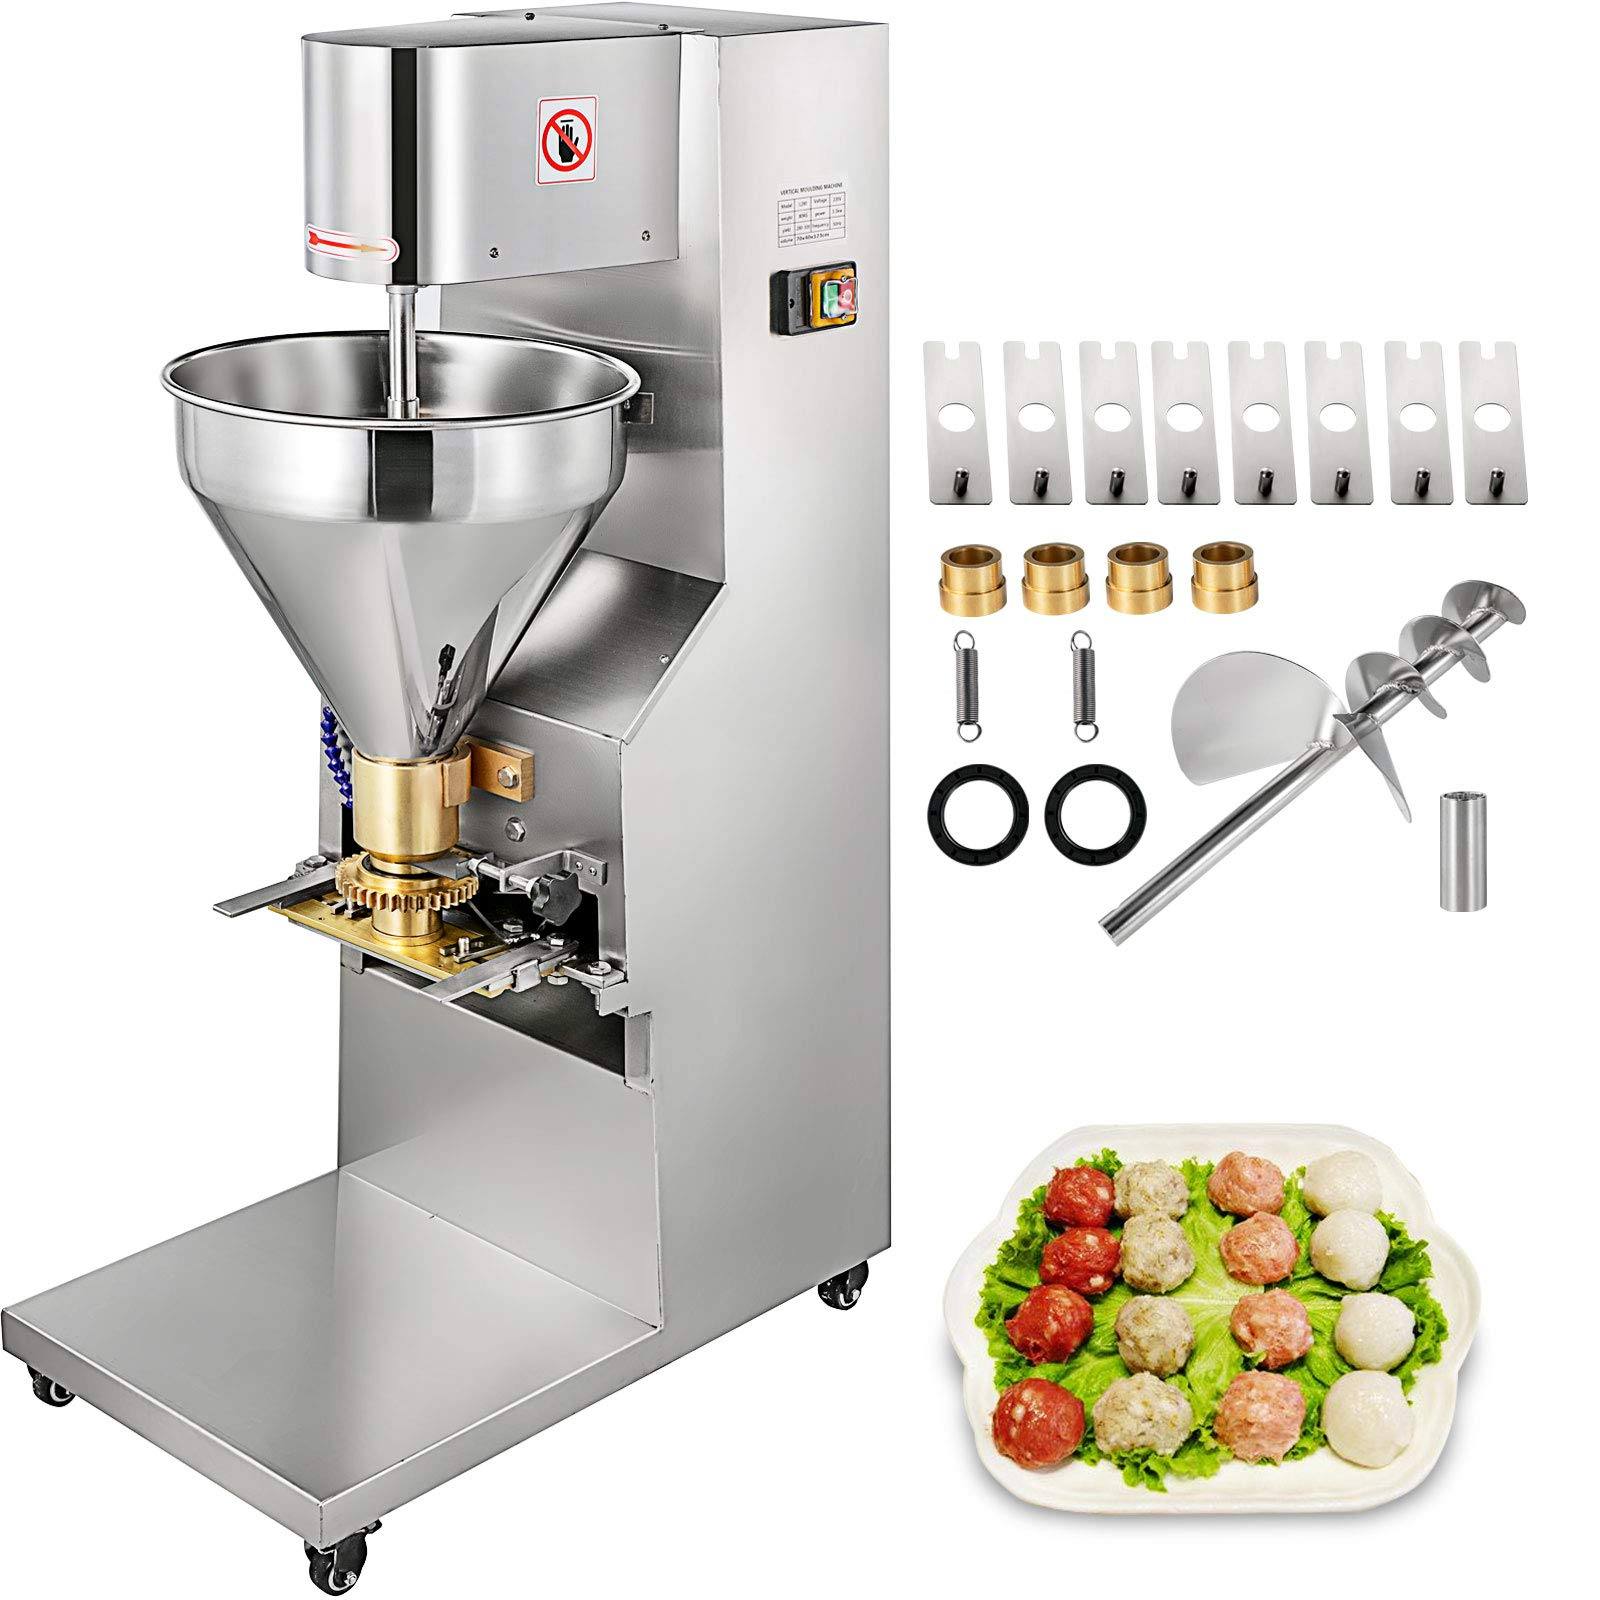 VBENLEM 1100W Commercial Meatball Forming Machine 280 Pcs/min Production Meatball Maker Machine with 18/20/22/26/30mm Models, Meatball Machine, Stainless Steel Meatball Maker Electric